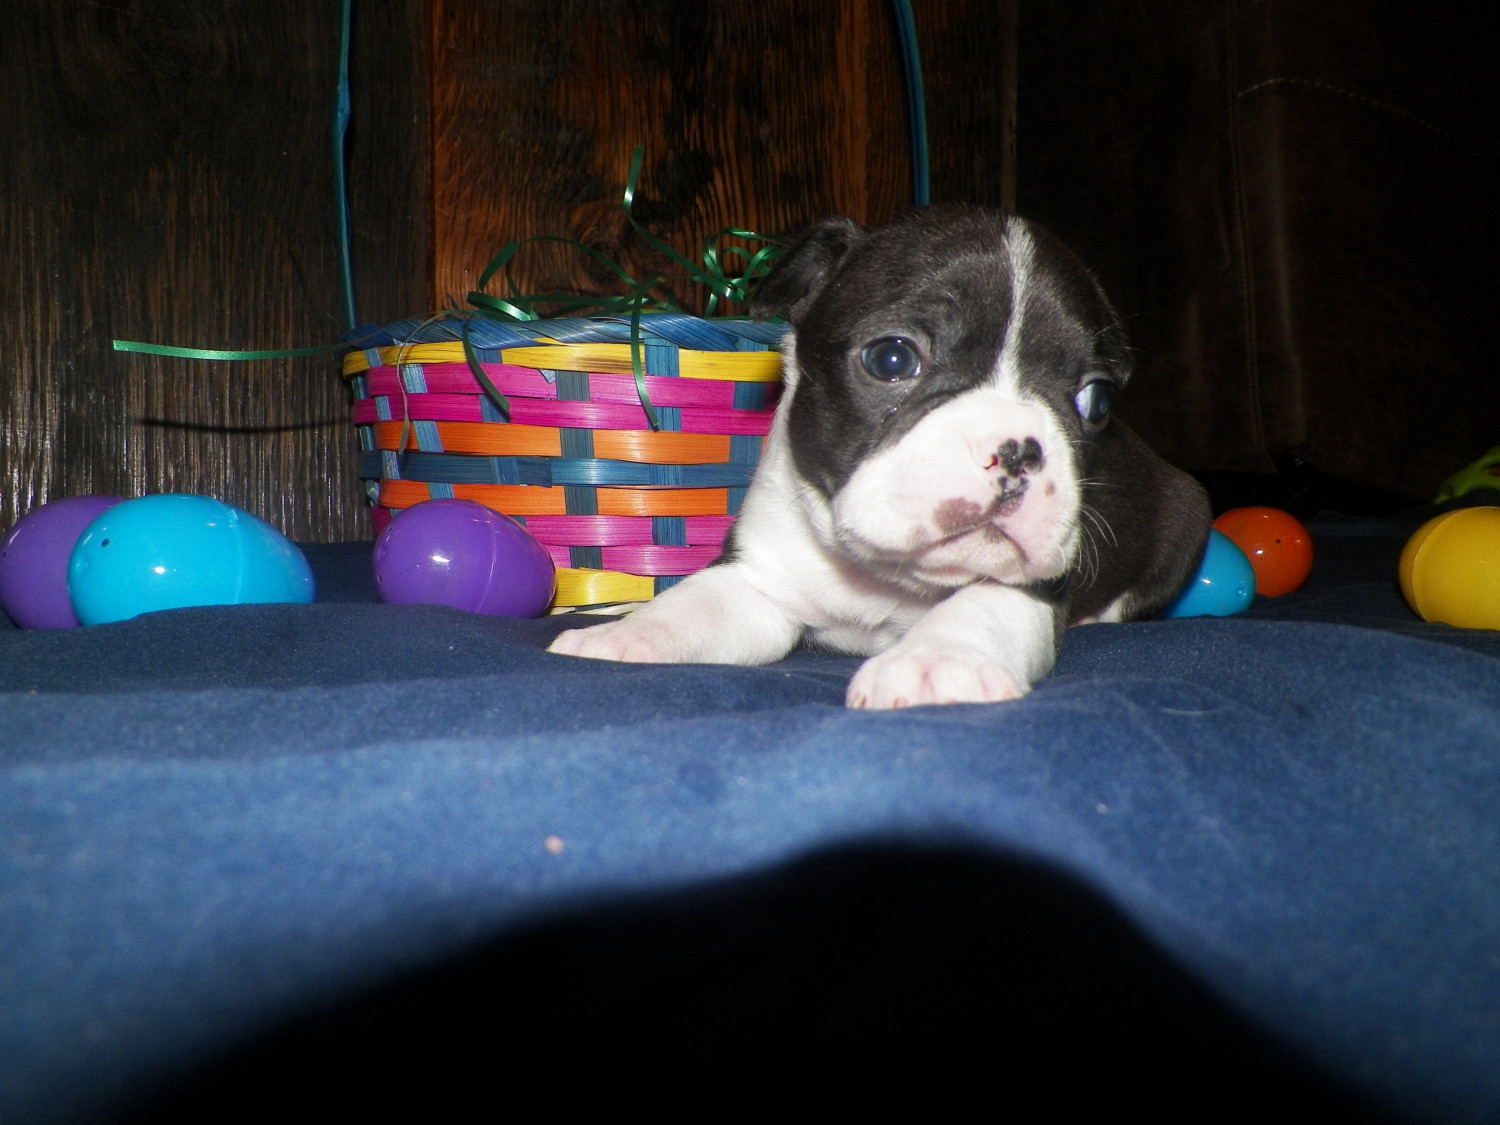 Boston Terrier Puppies For Sale Cave City Ky 273795 - Www